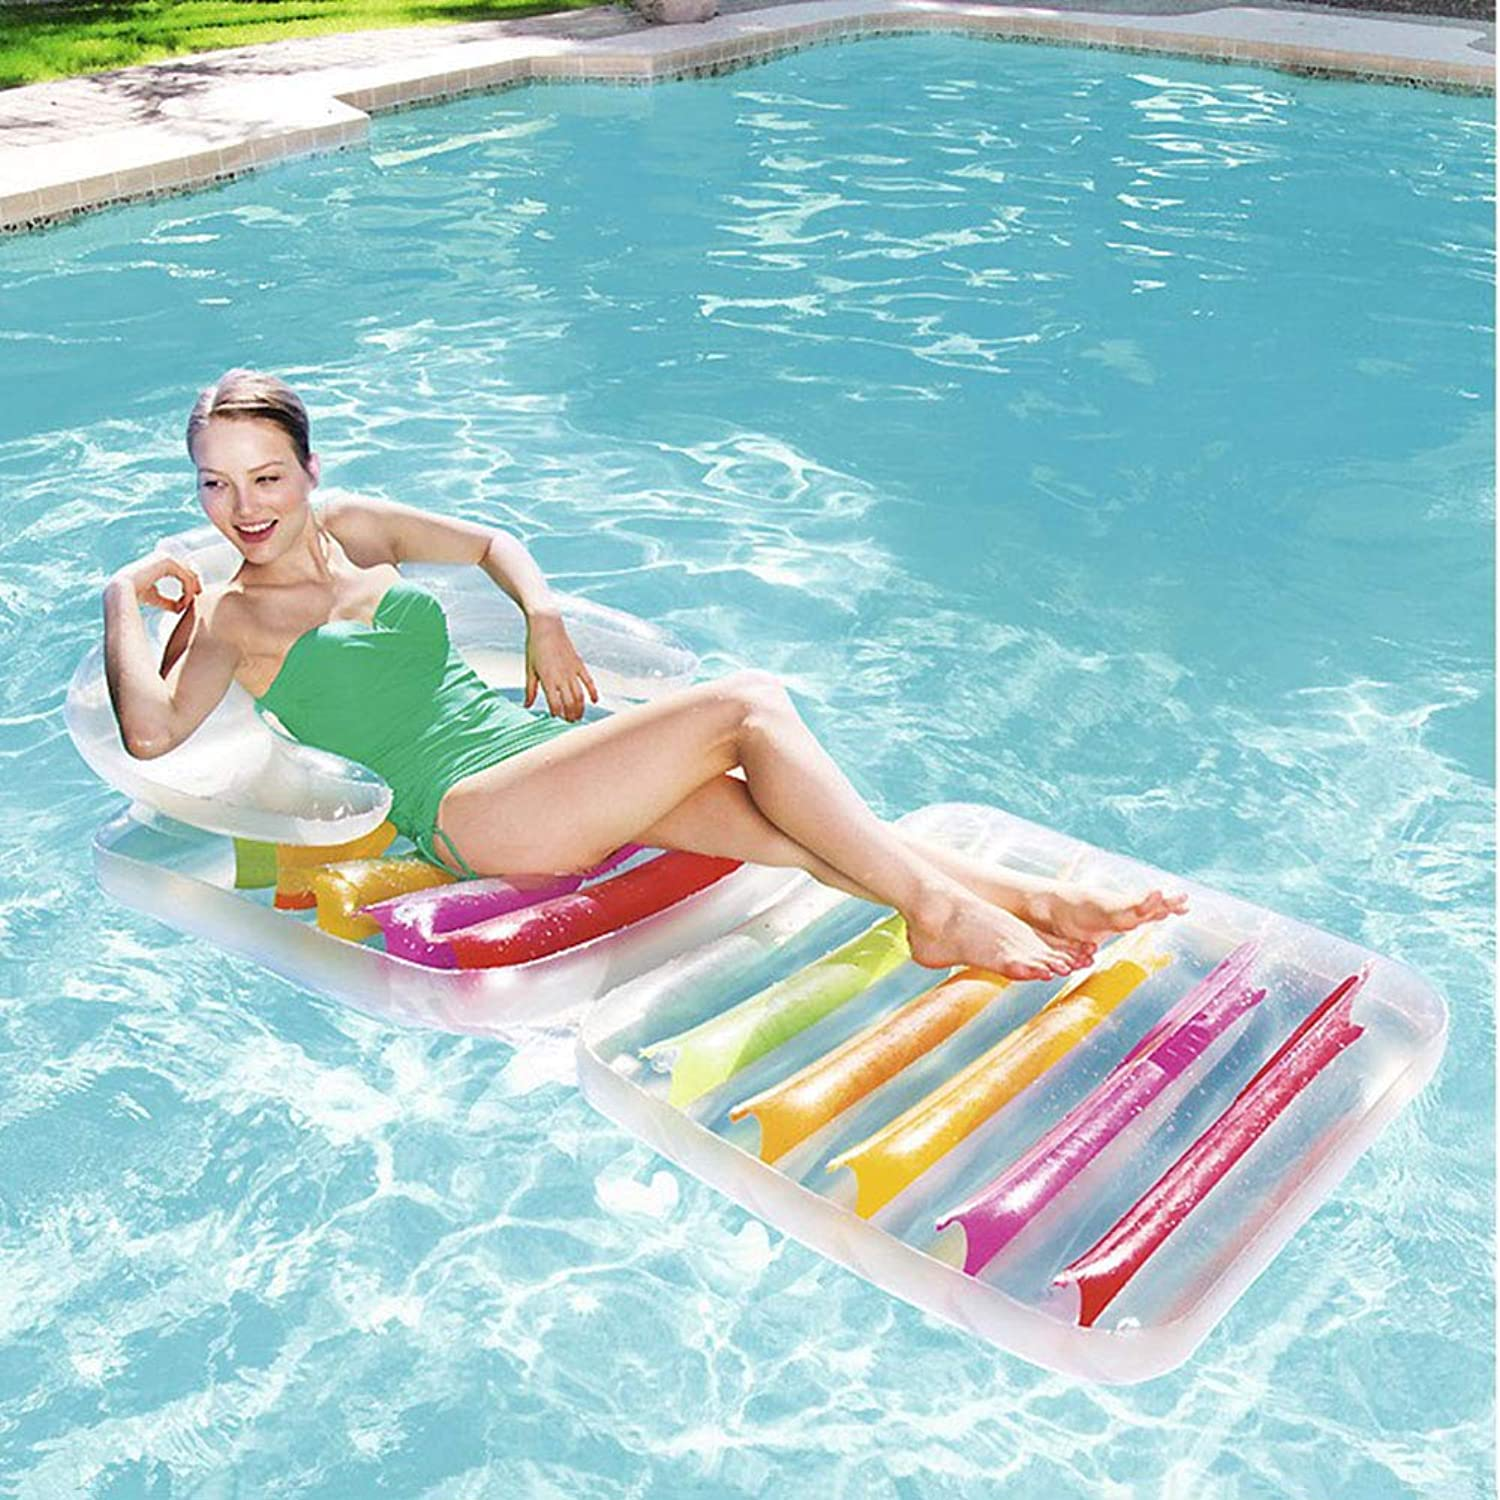 Floats Giant Water Land color Pool Float  Fun Adults Swim Party Toy  Summer Lounge Raft